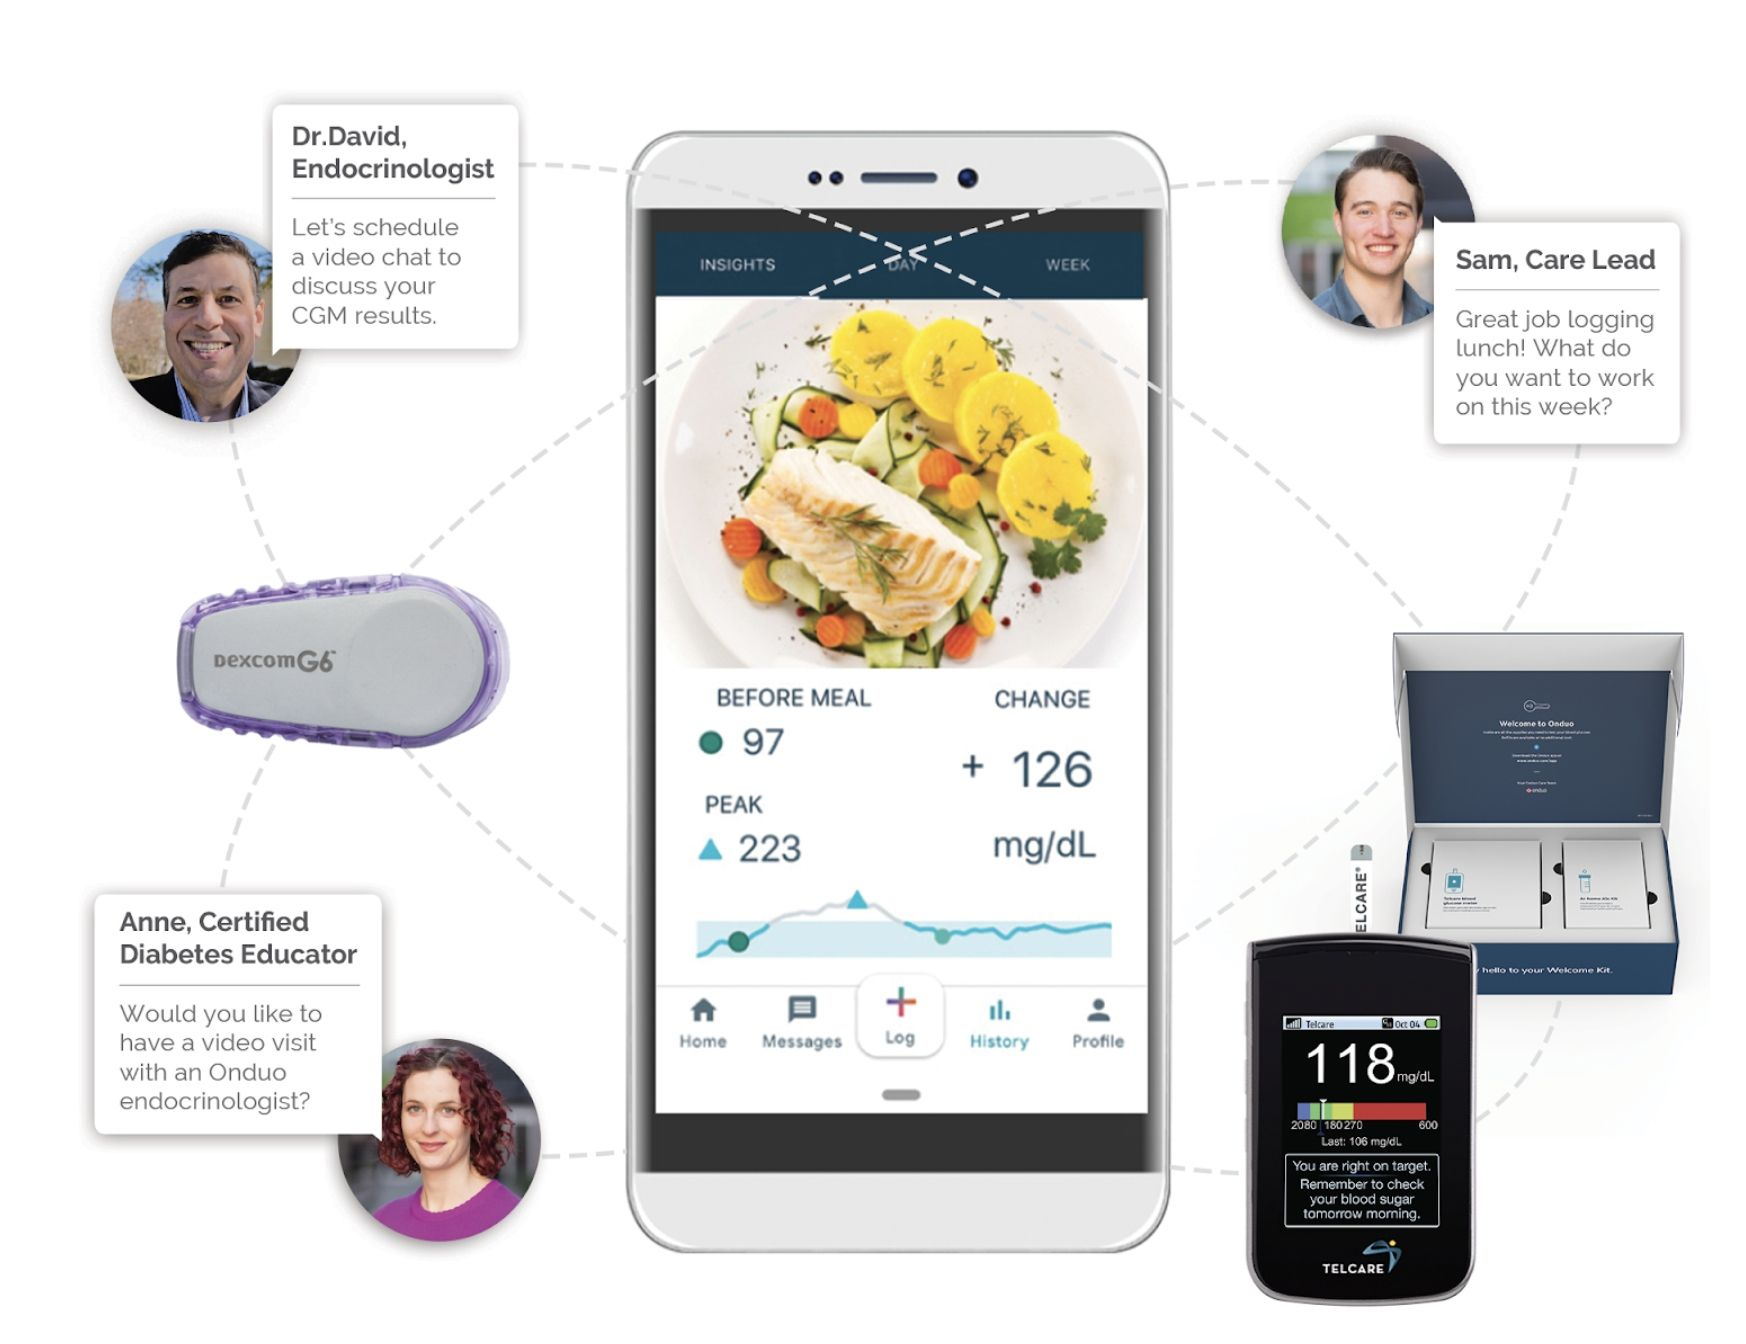 photo infographic showing how components of a type2 diabetes management program interact, using virtual technology and personal monitoring